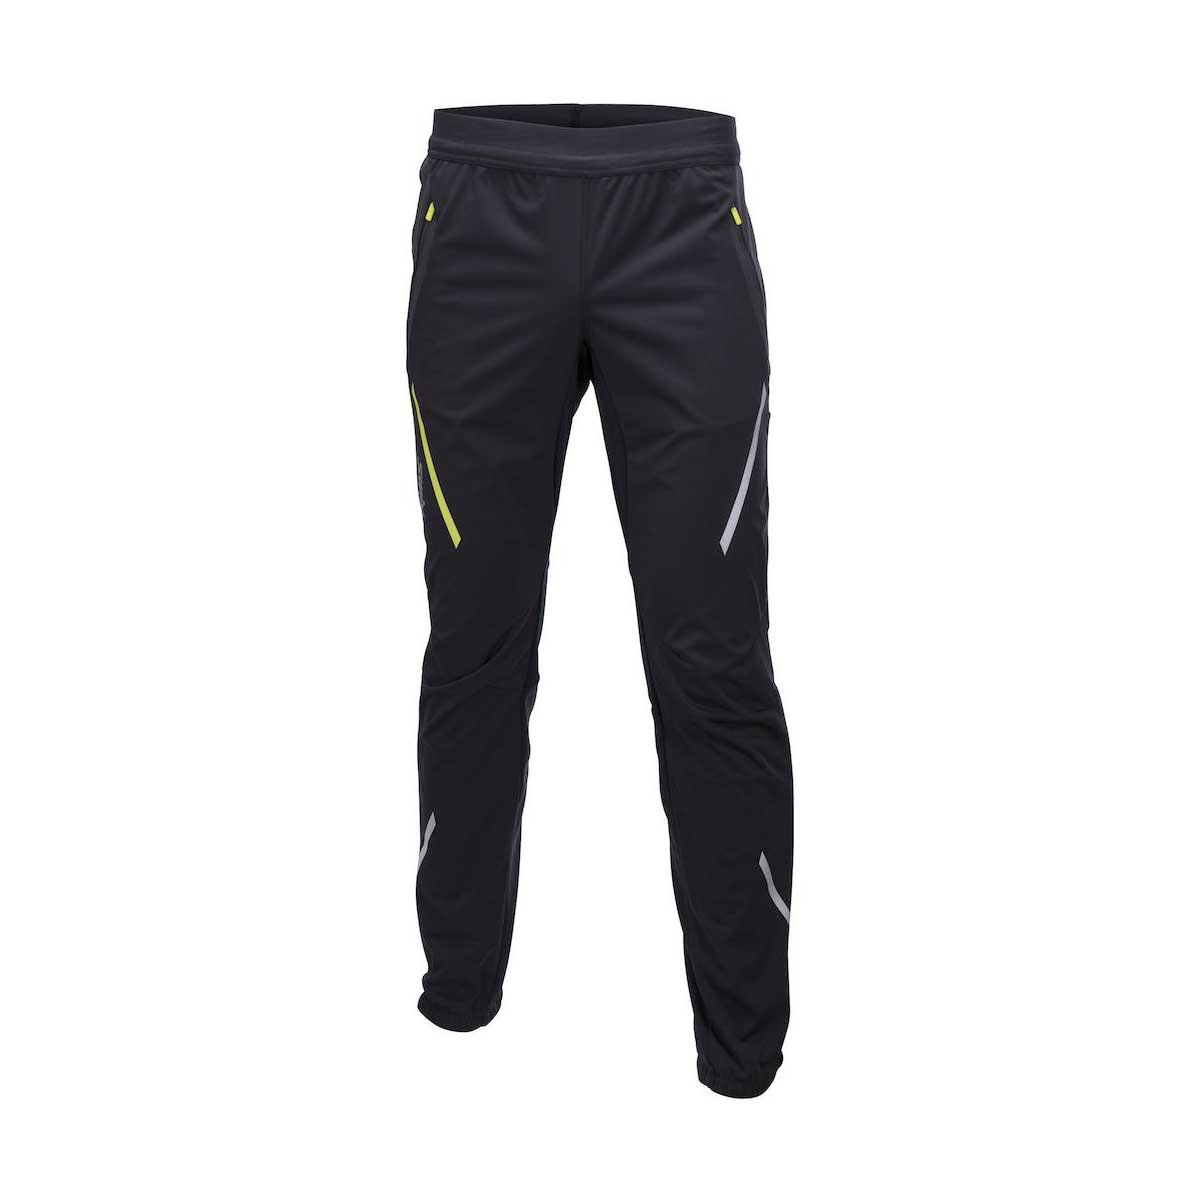 Swix Men's Cross Pant in Phantom and Black